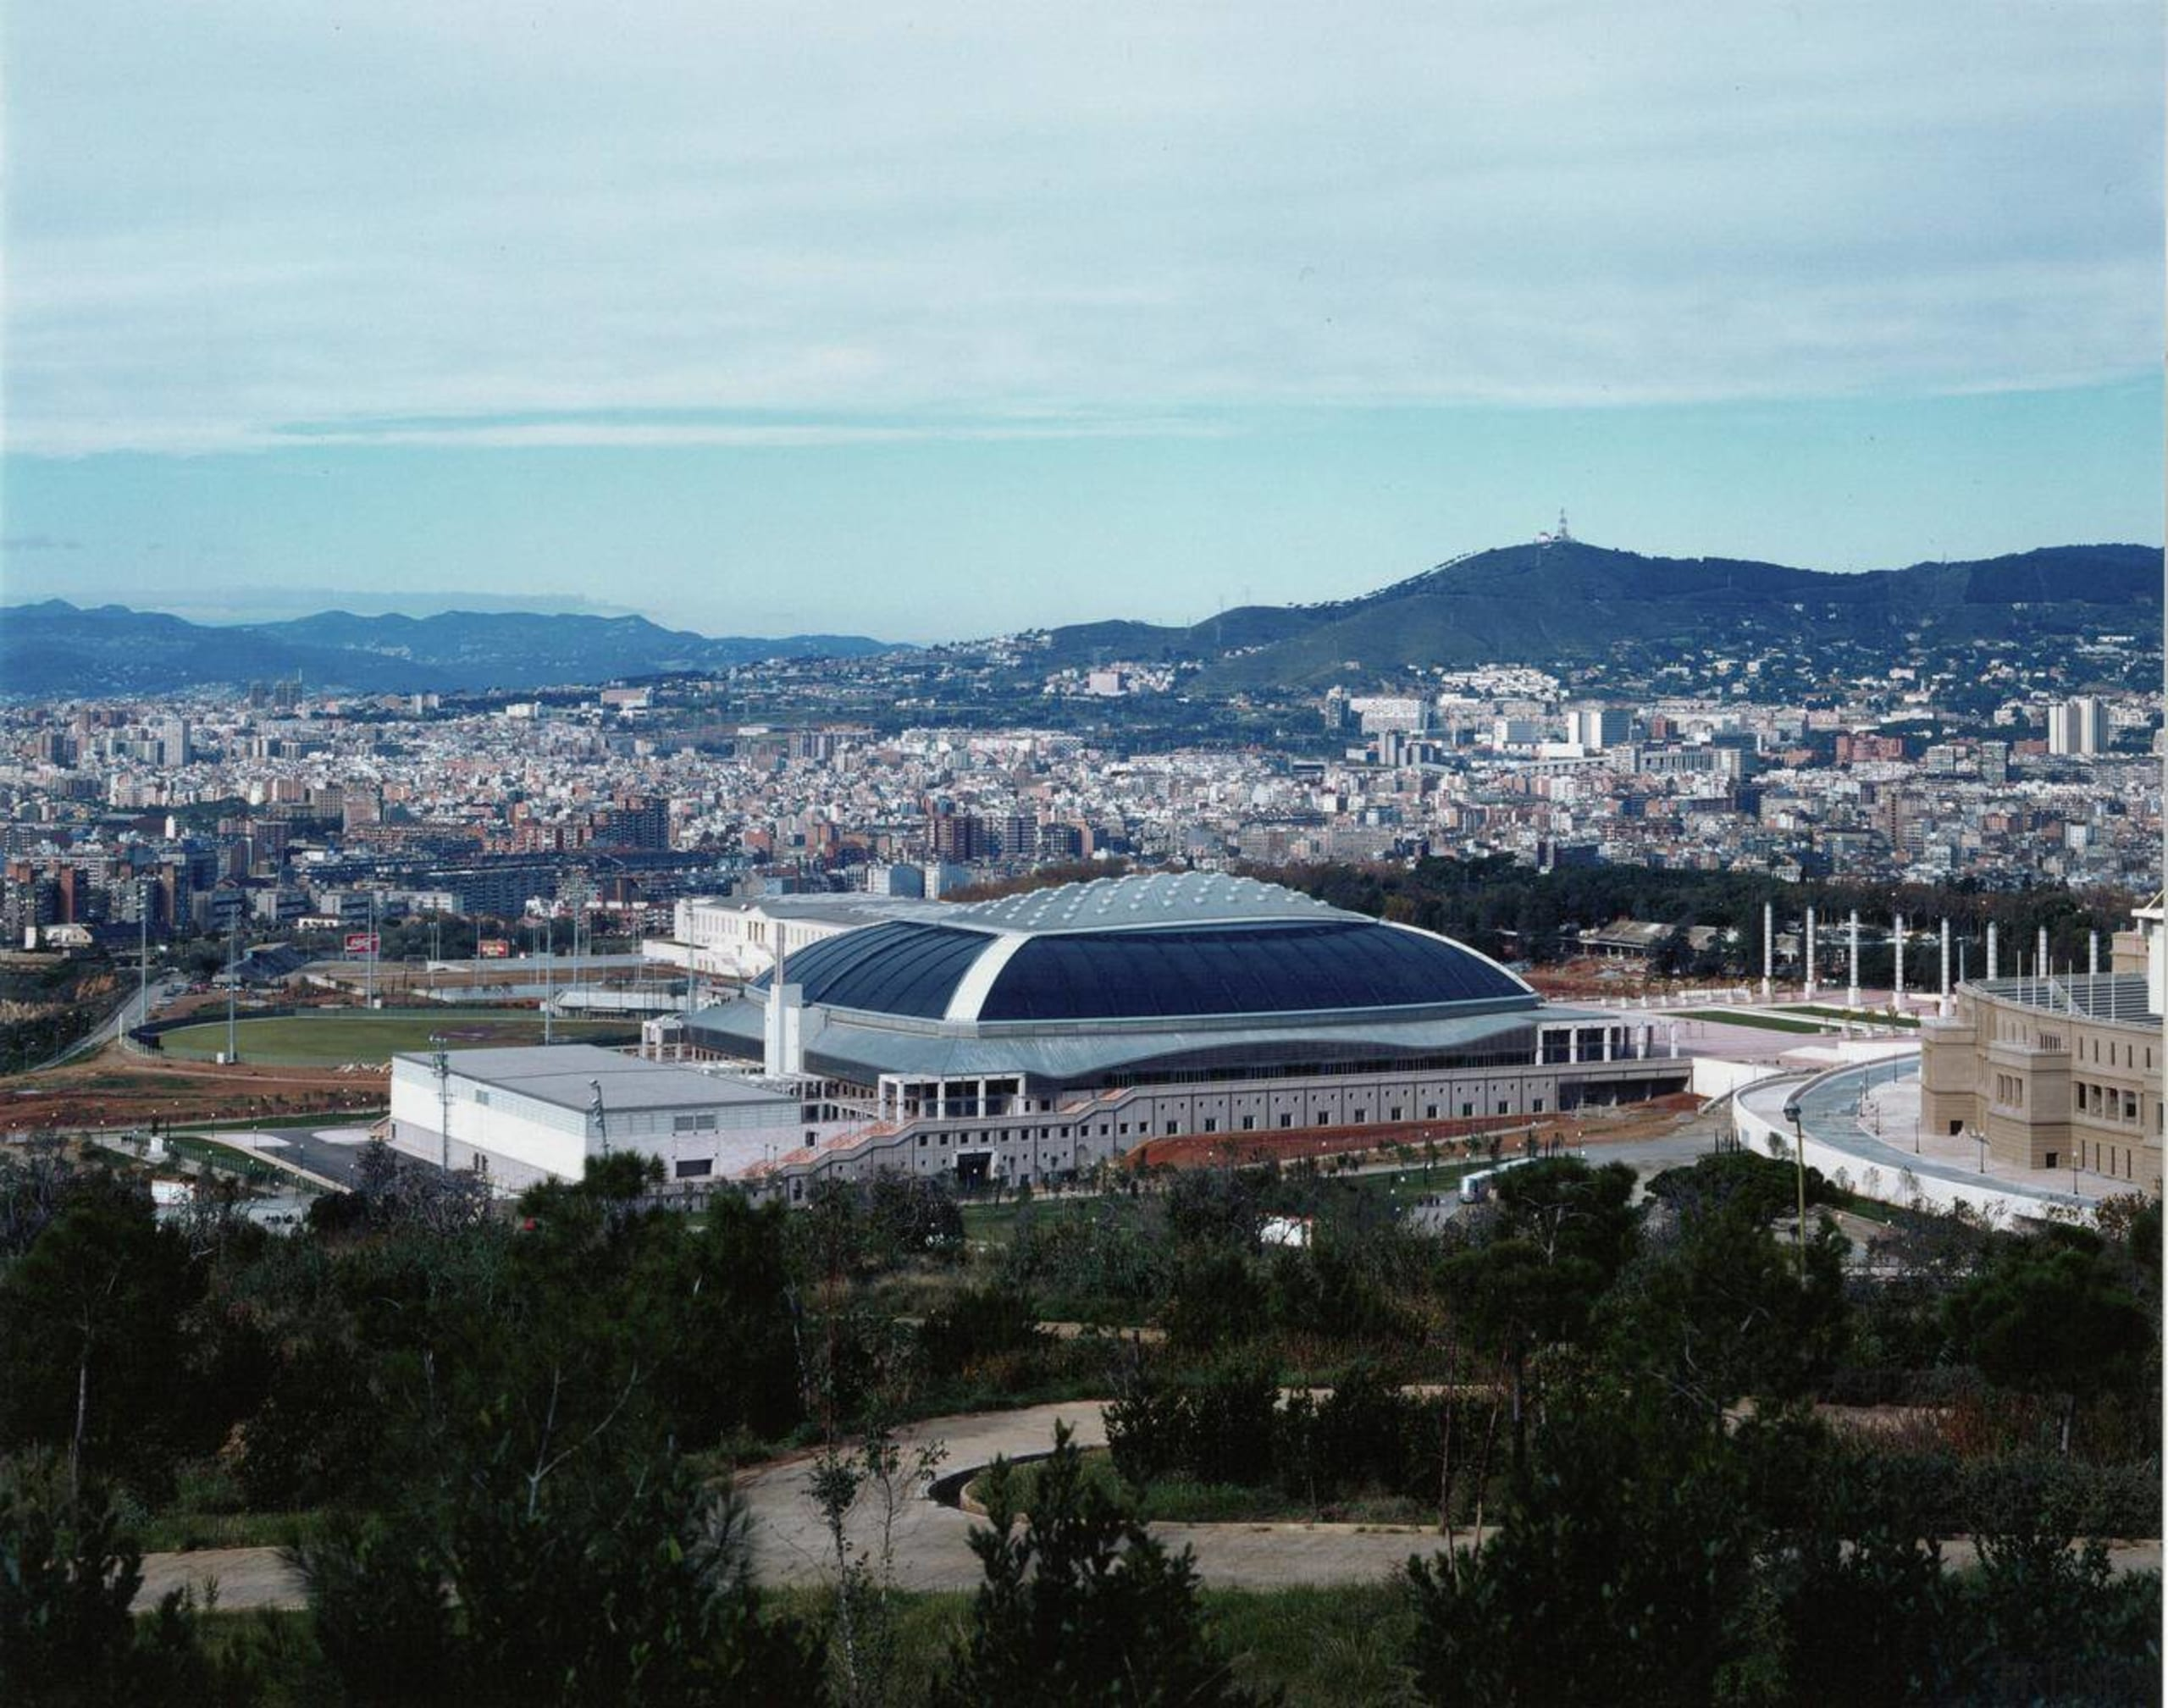 For more than 25 years now, Palau Sant aerial photography, arena, bird's eye view, city, sport venue, stadium, structure, urban area, white, black